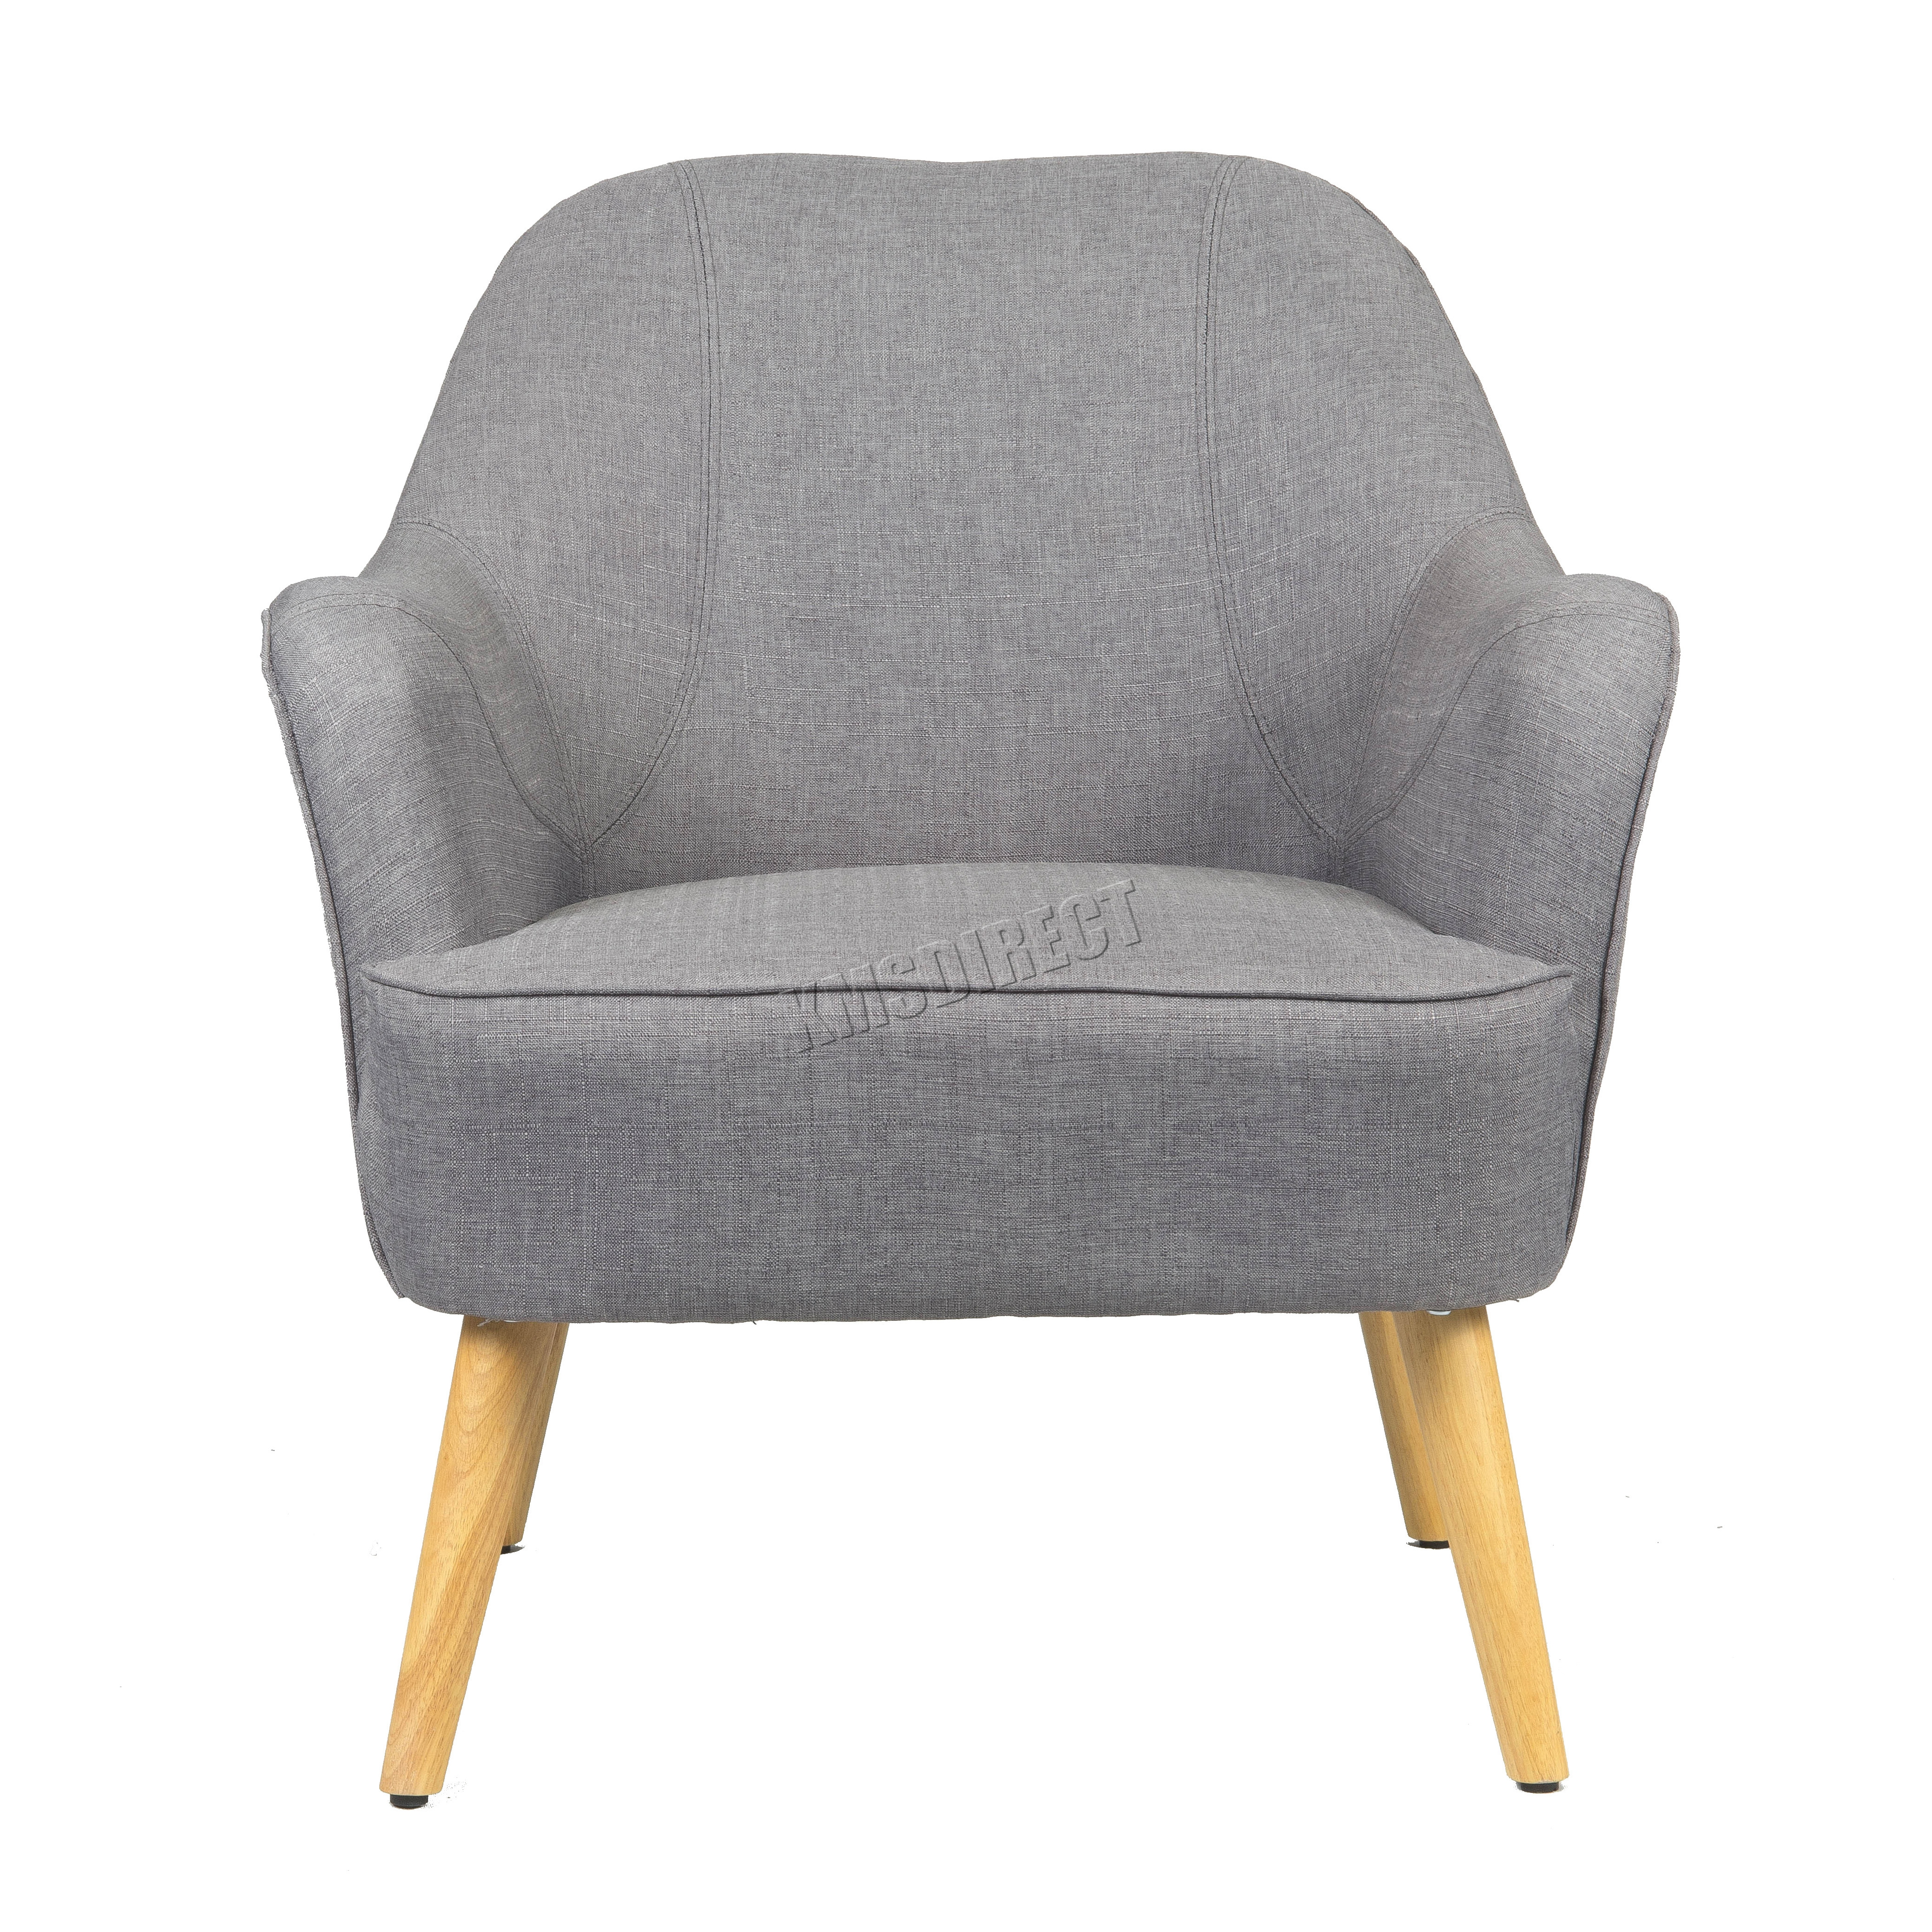 sentinel foxhunter linen fabric tub chair armchair dining living room lounge tc10 modern